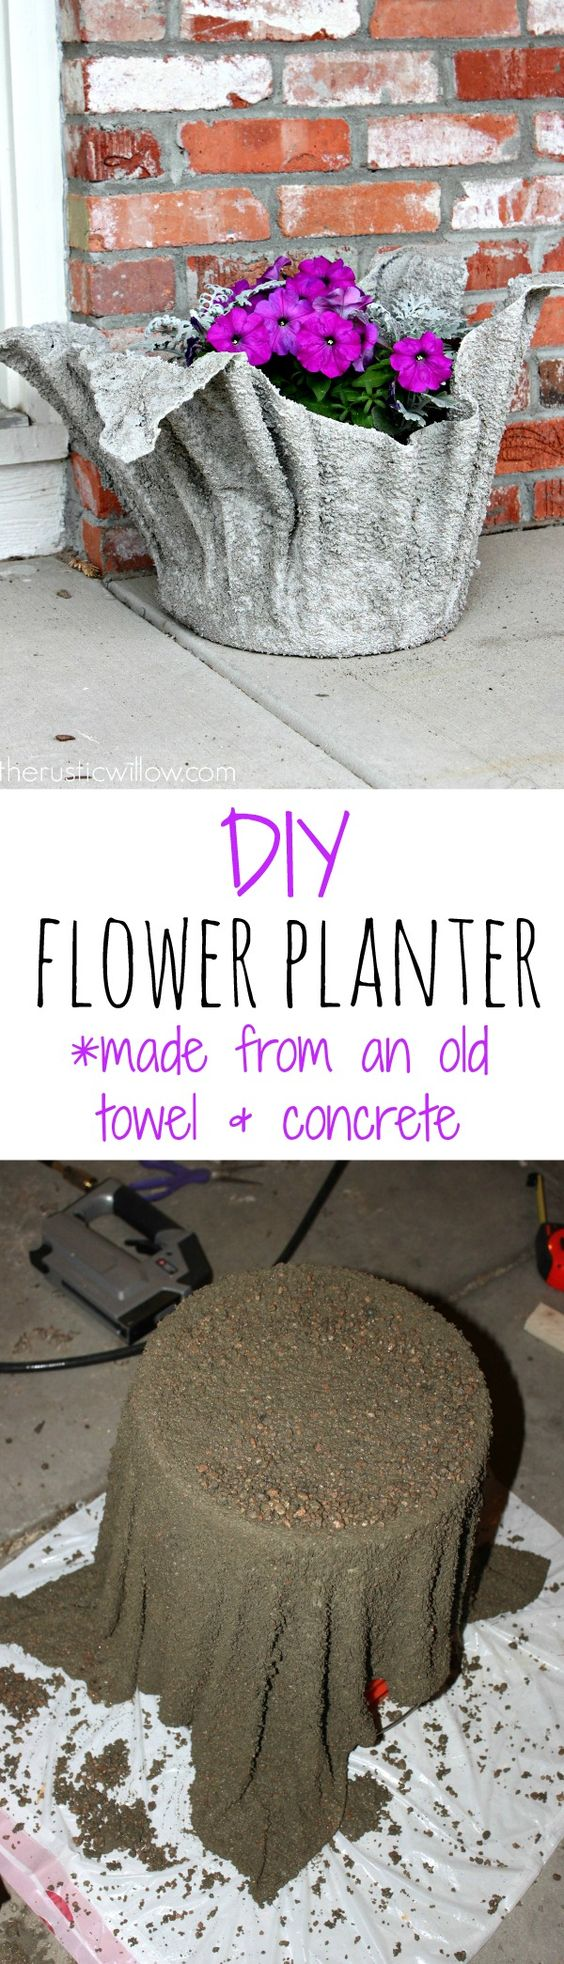 DIY concrete flower planter, made from just an old towel and some concrete! Super simple project with a gorgeous outcome | therusticwillow.com: